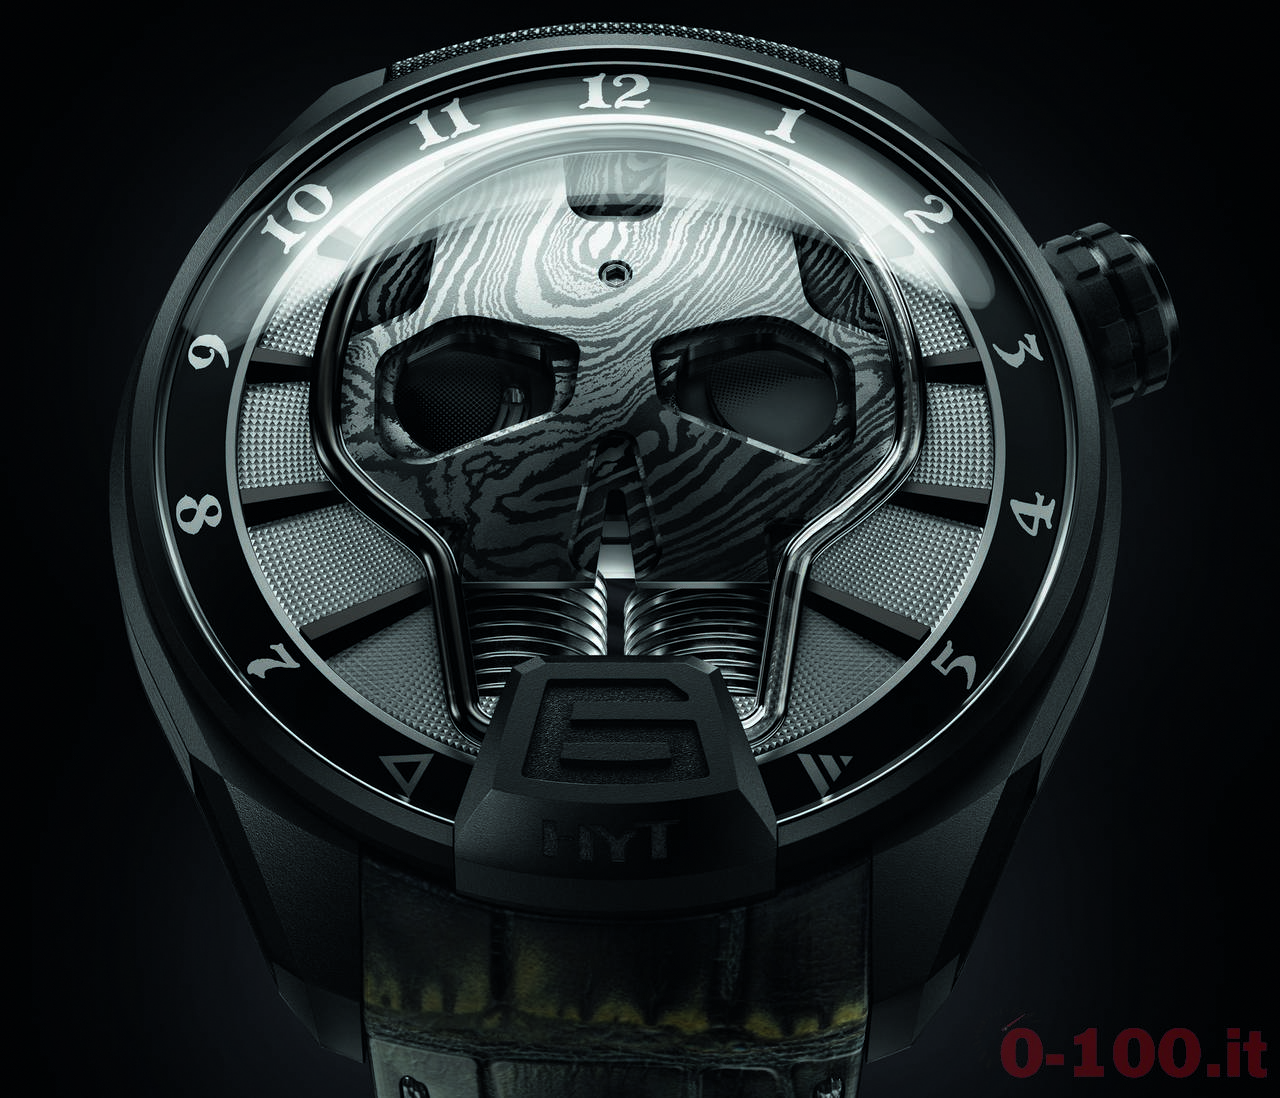 baselworld-2016-hyt-skull-bad-boy-prezzo-price_0-1002